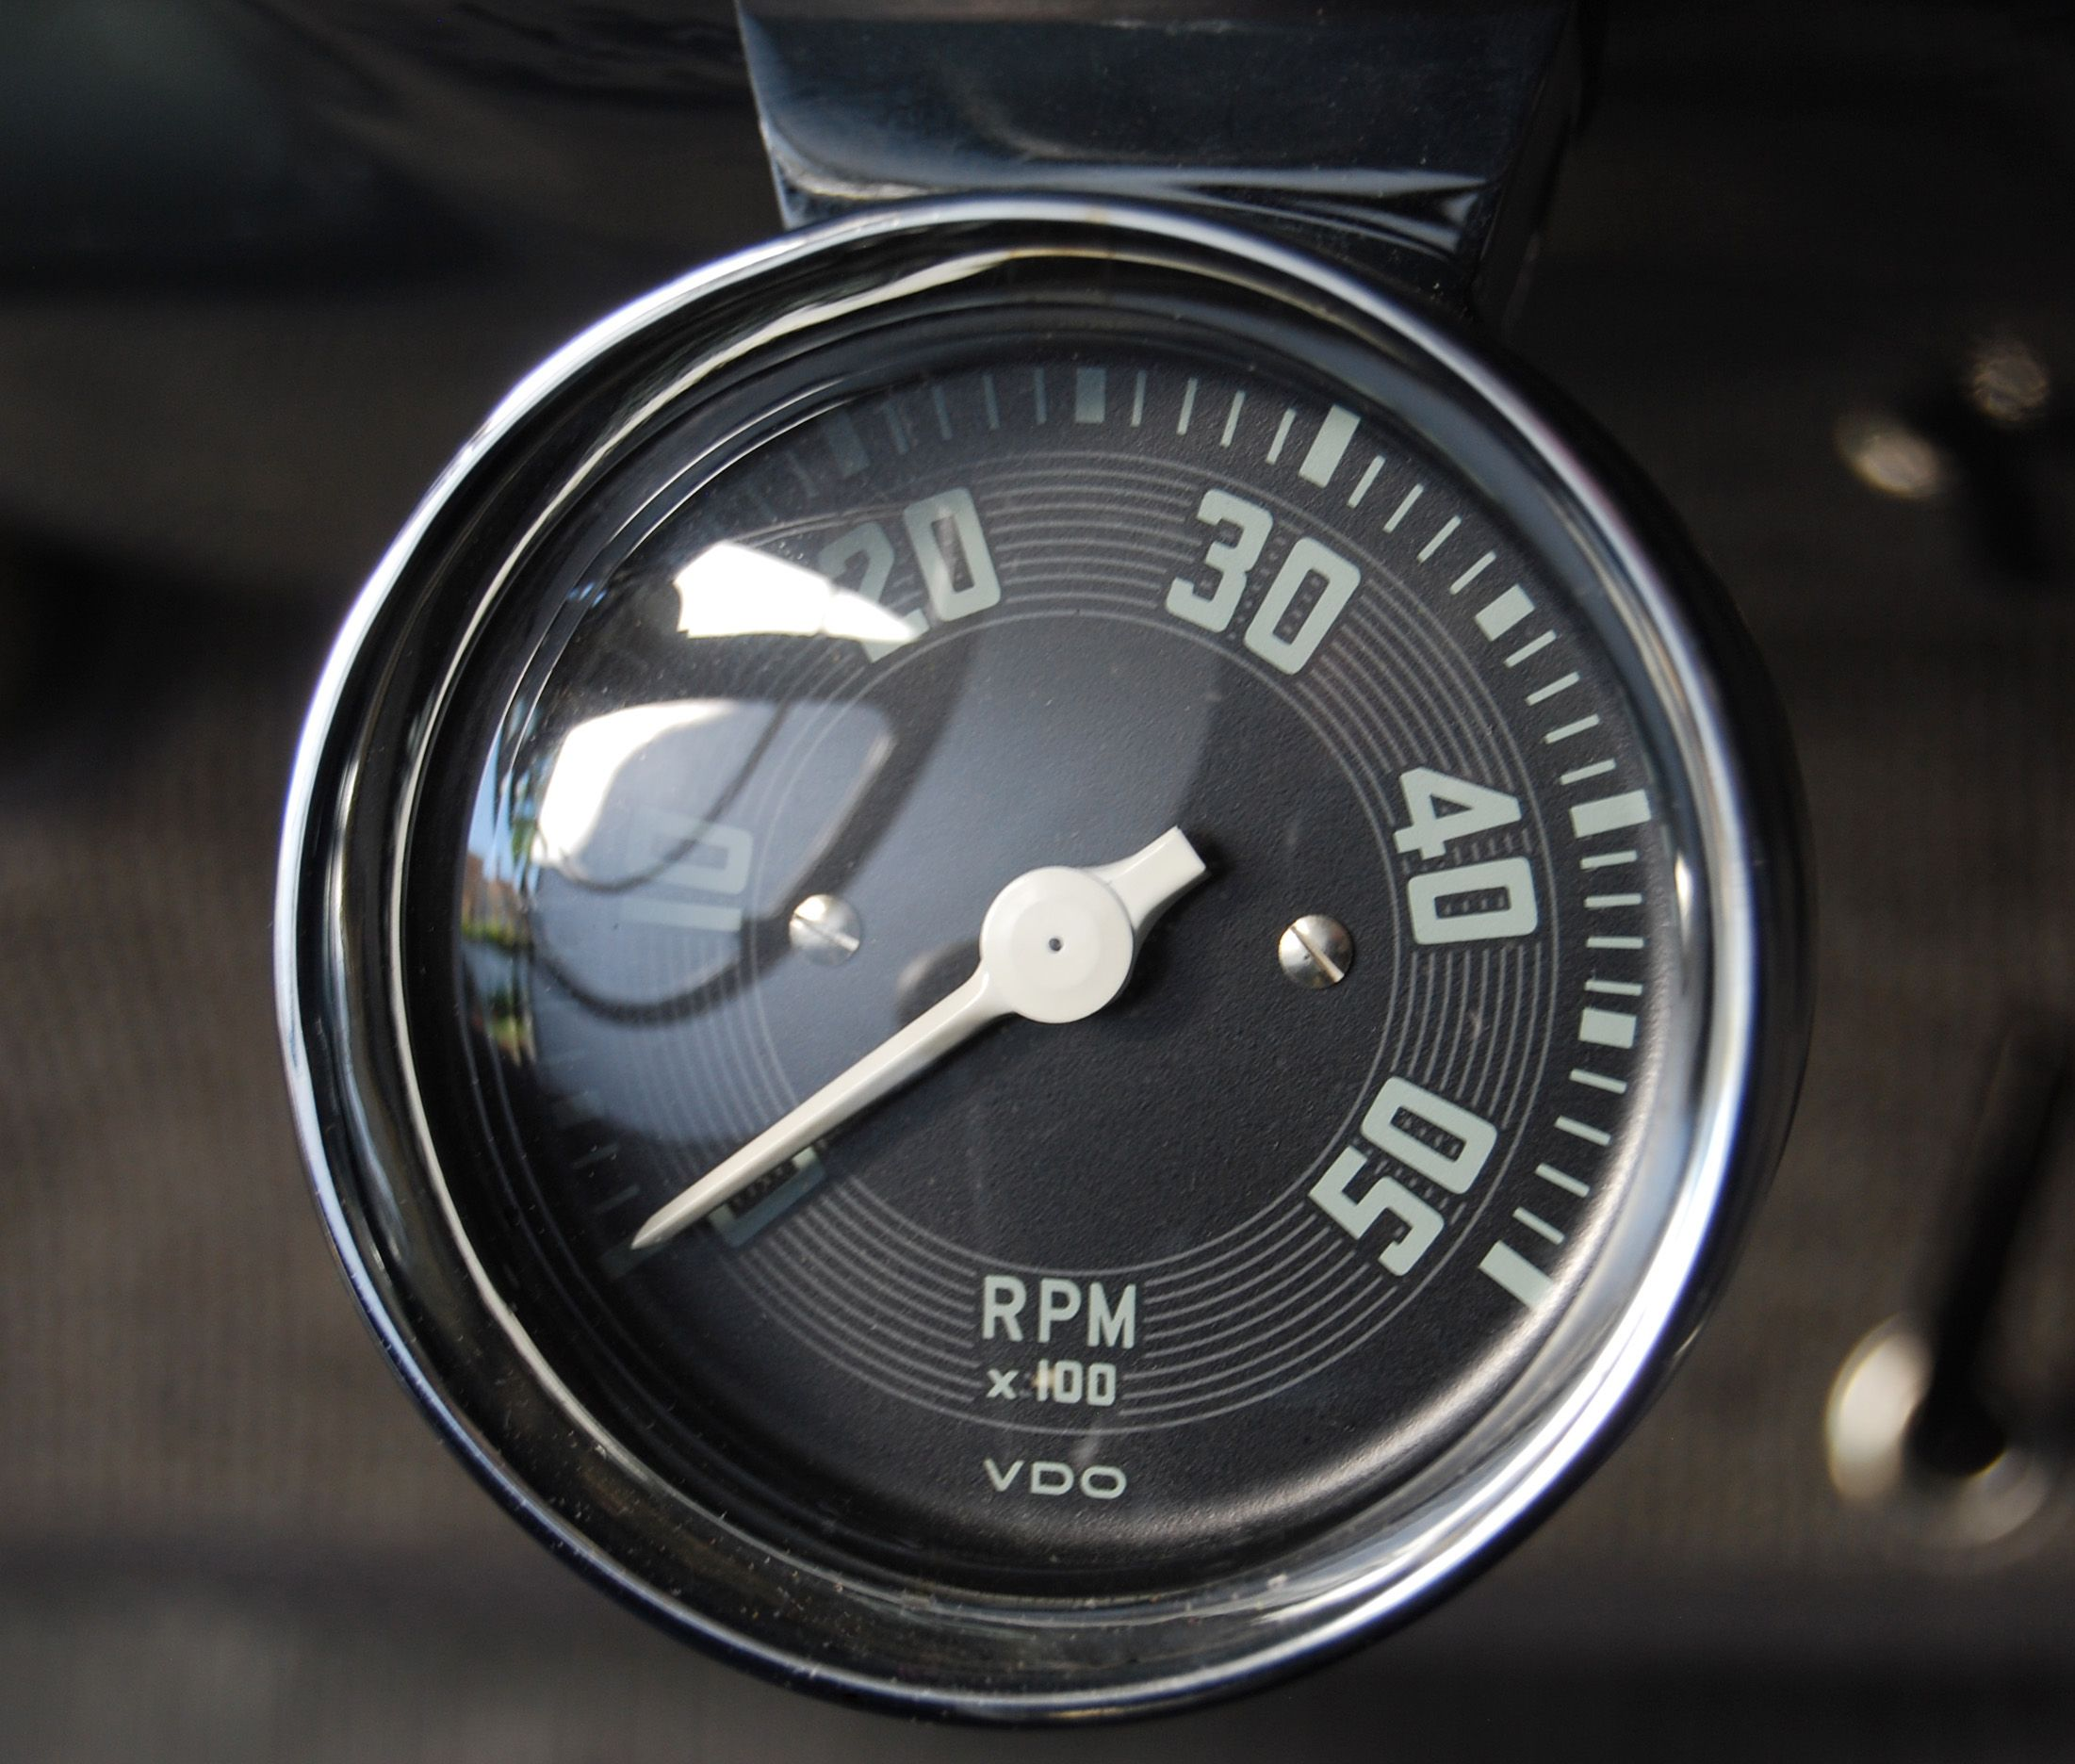 Vdo Outboard Tach Picturesque Engine Synchronizer Gauge Wiring Diagram Extremely Rare Accessory Tachometer Mounted 2202x1872